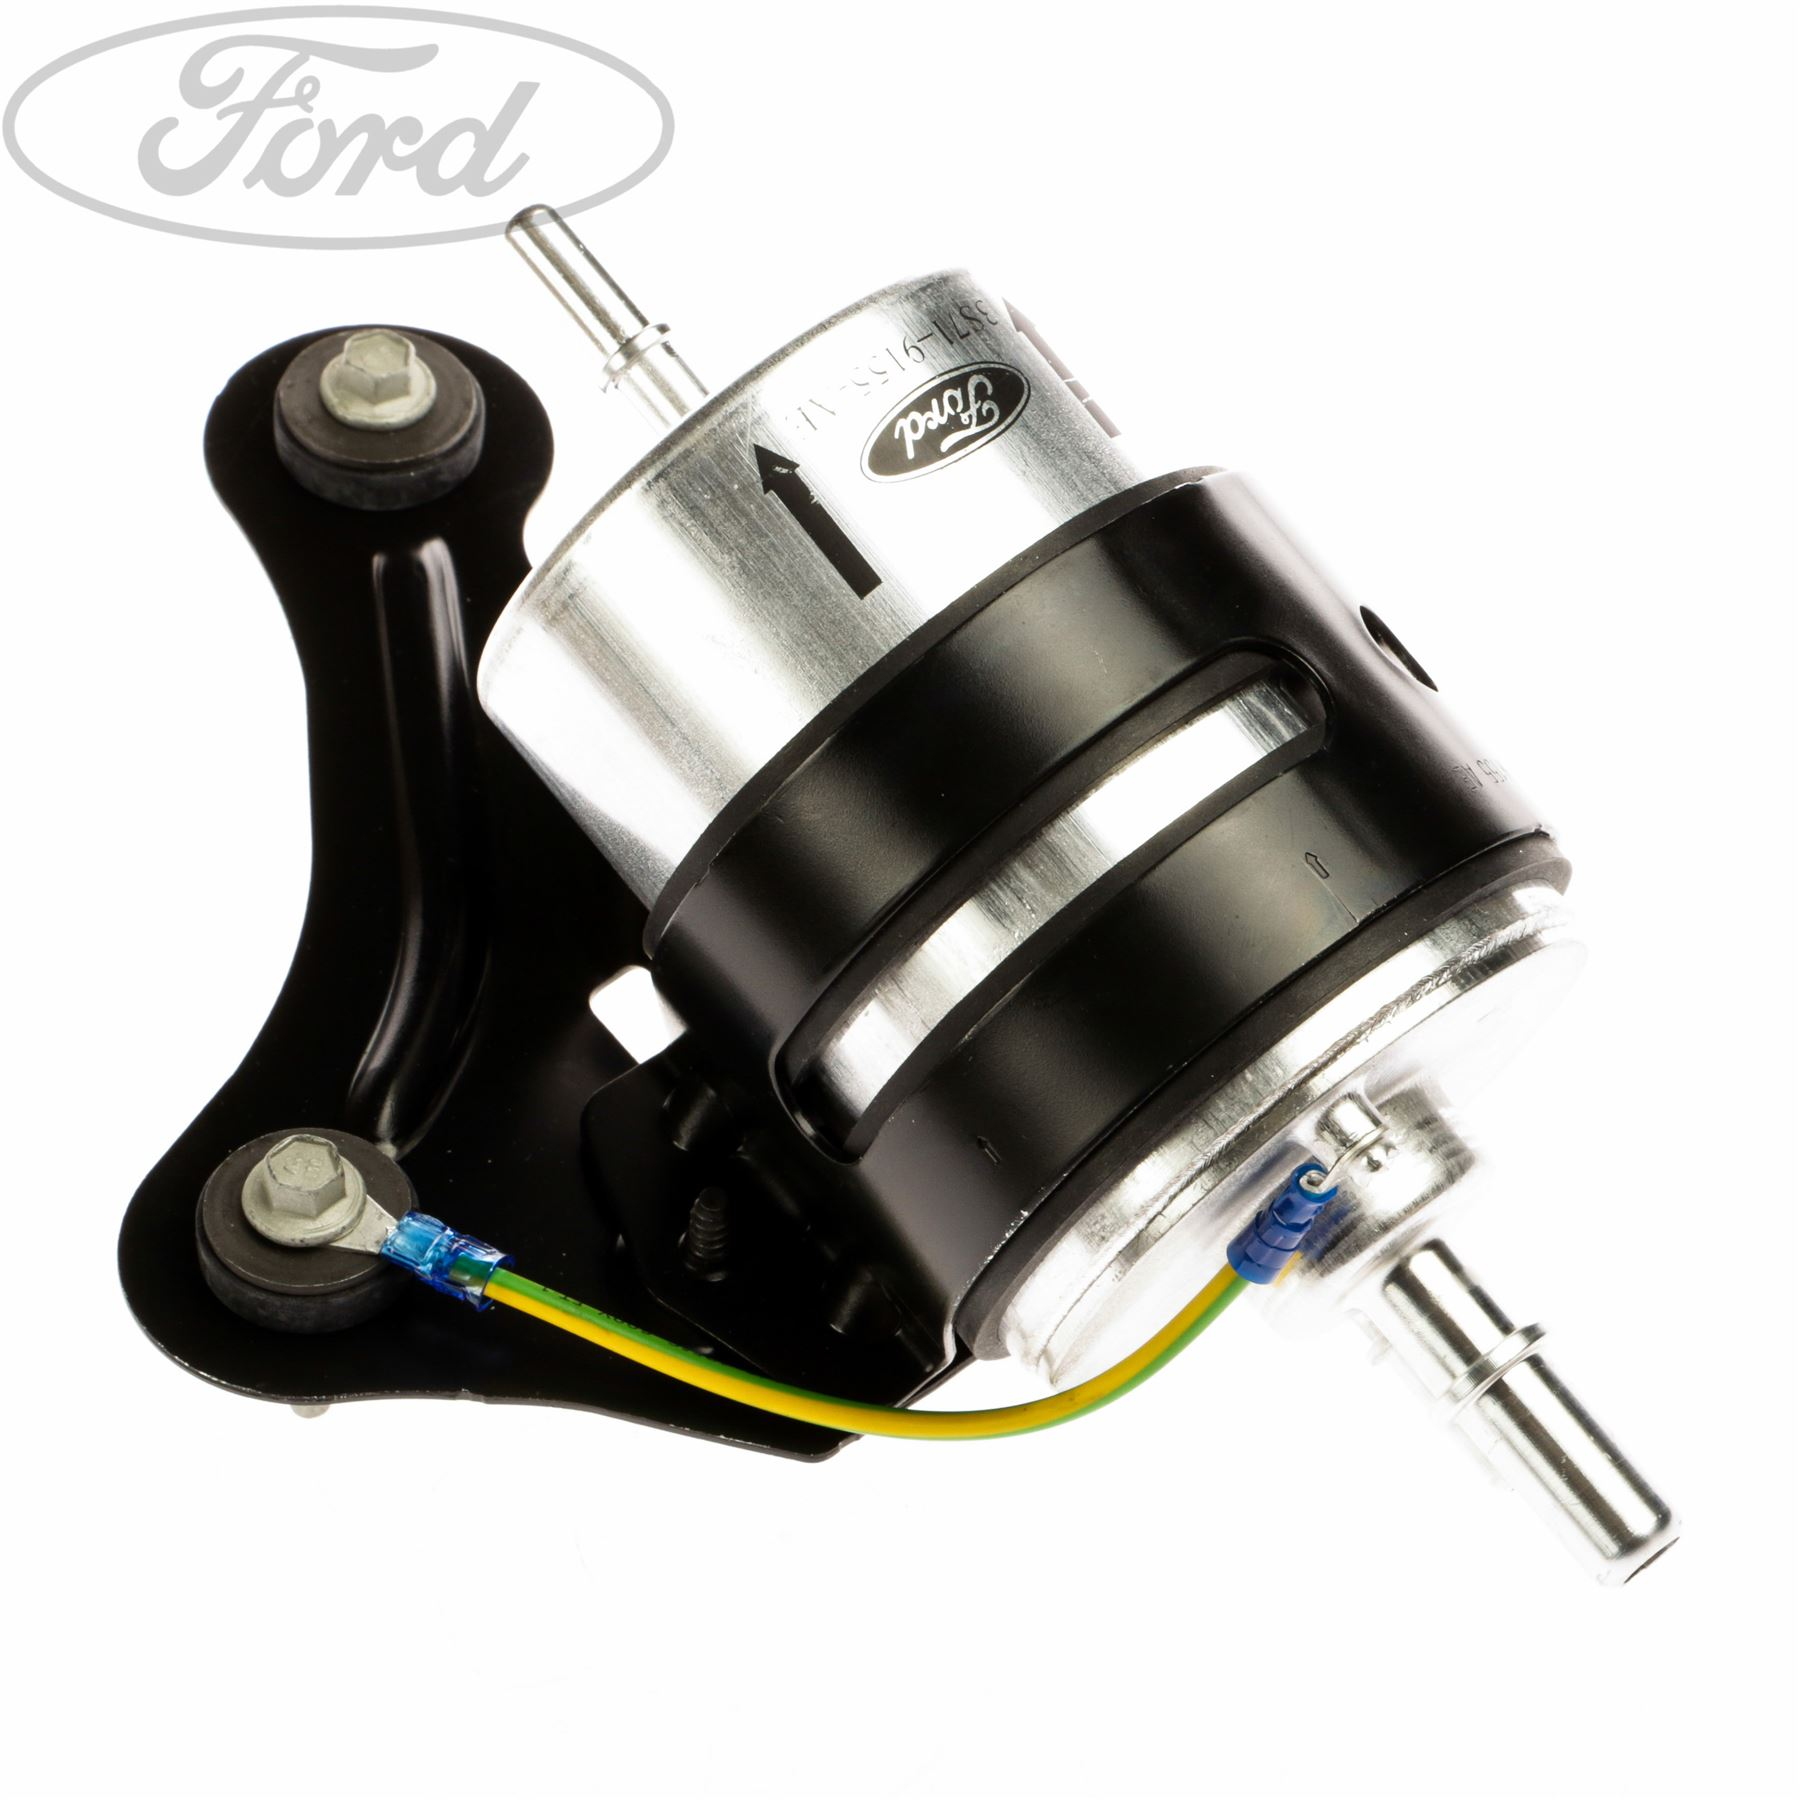 hight resolution of genuine ford mondeo mk3 1 8 sci duratec fuel filter inc bracket 130 bhp 1374652